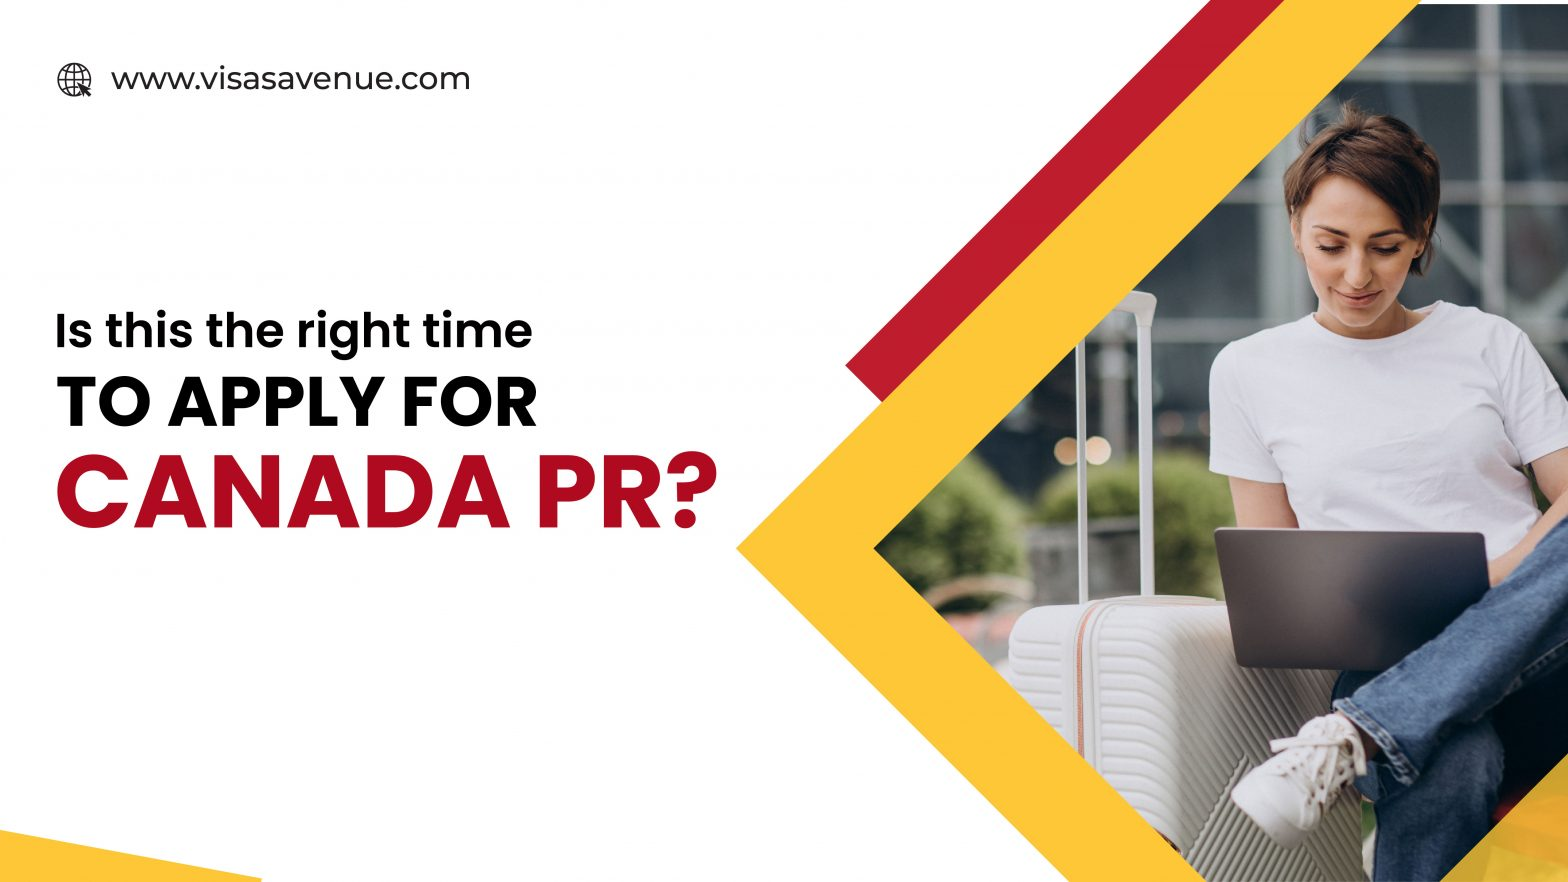 Is this the right time to apply for Canada PR?